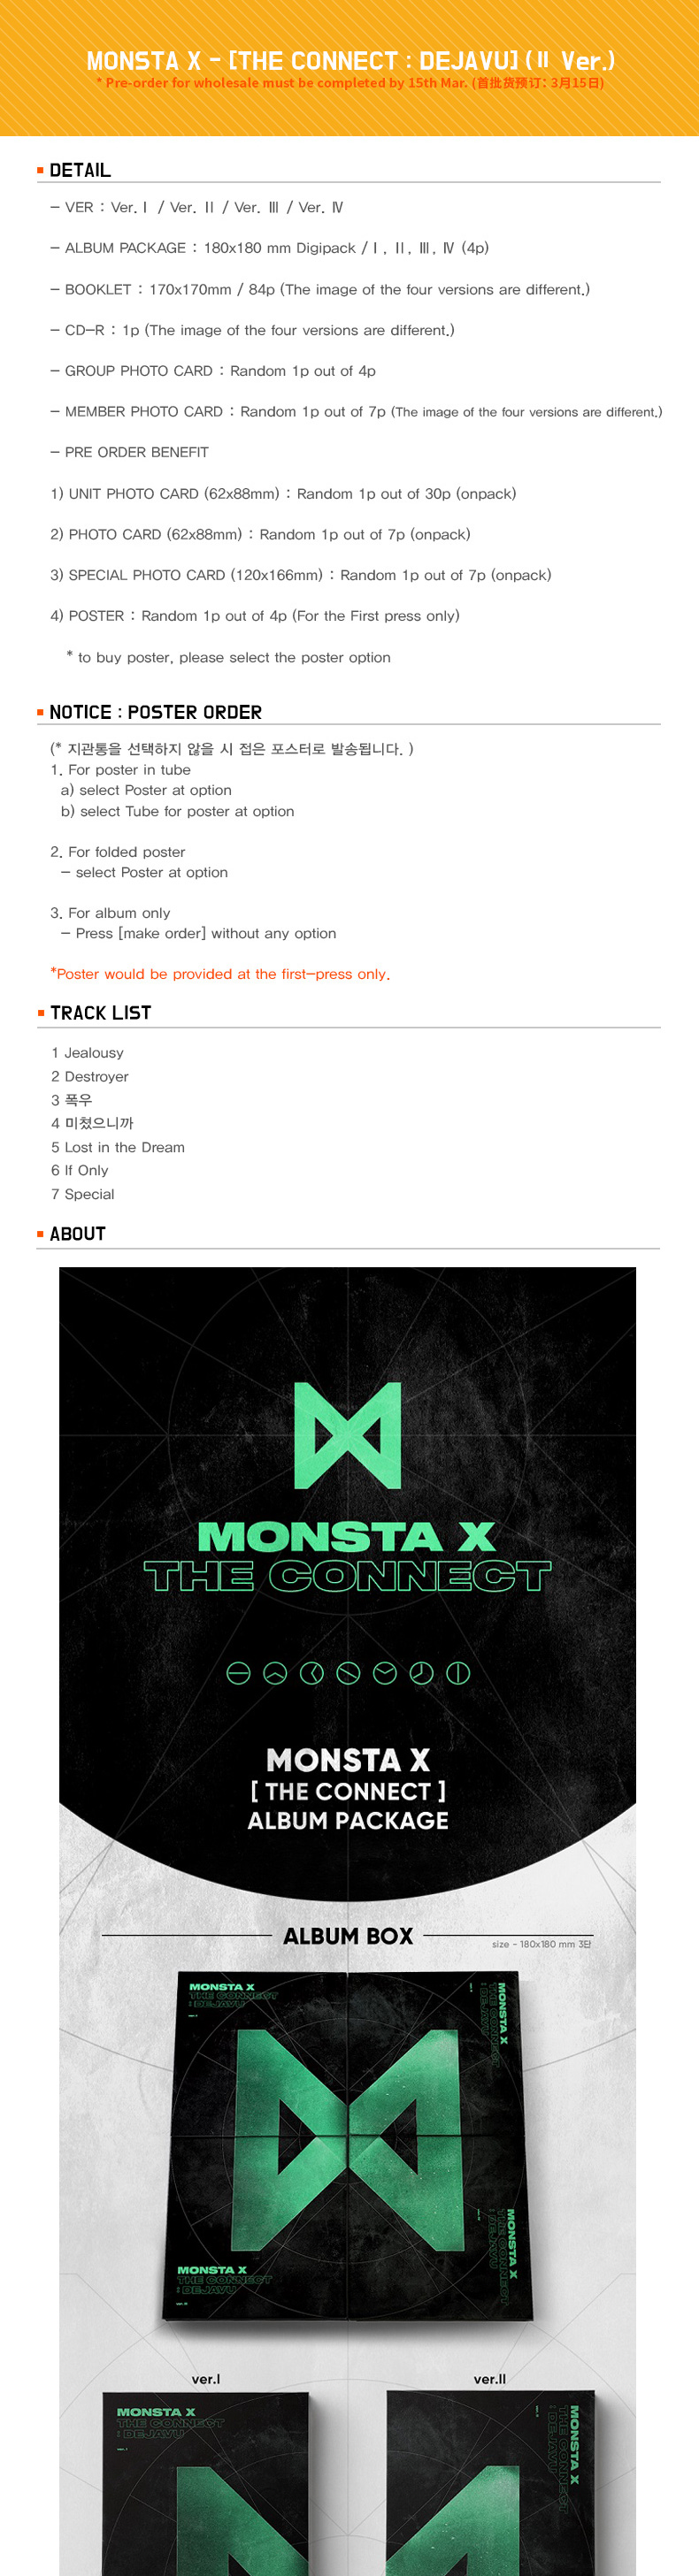 MONSTA X - [THE CONNECT : DEJAVU] (Ⅱ Ver.) (First press)